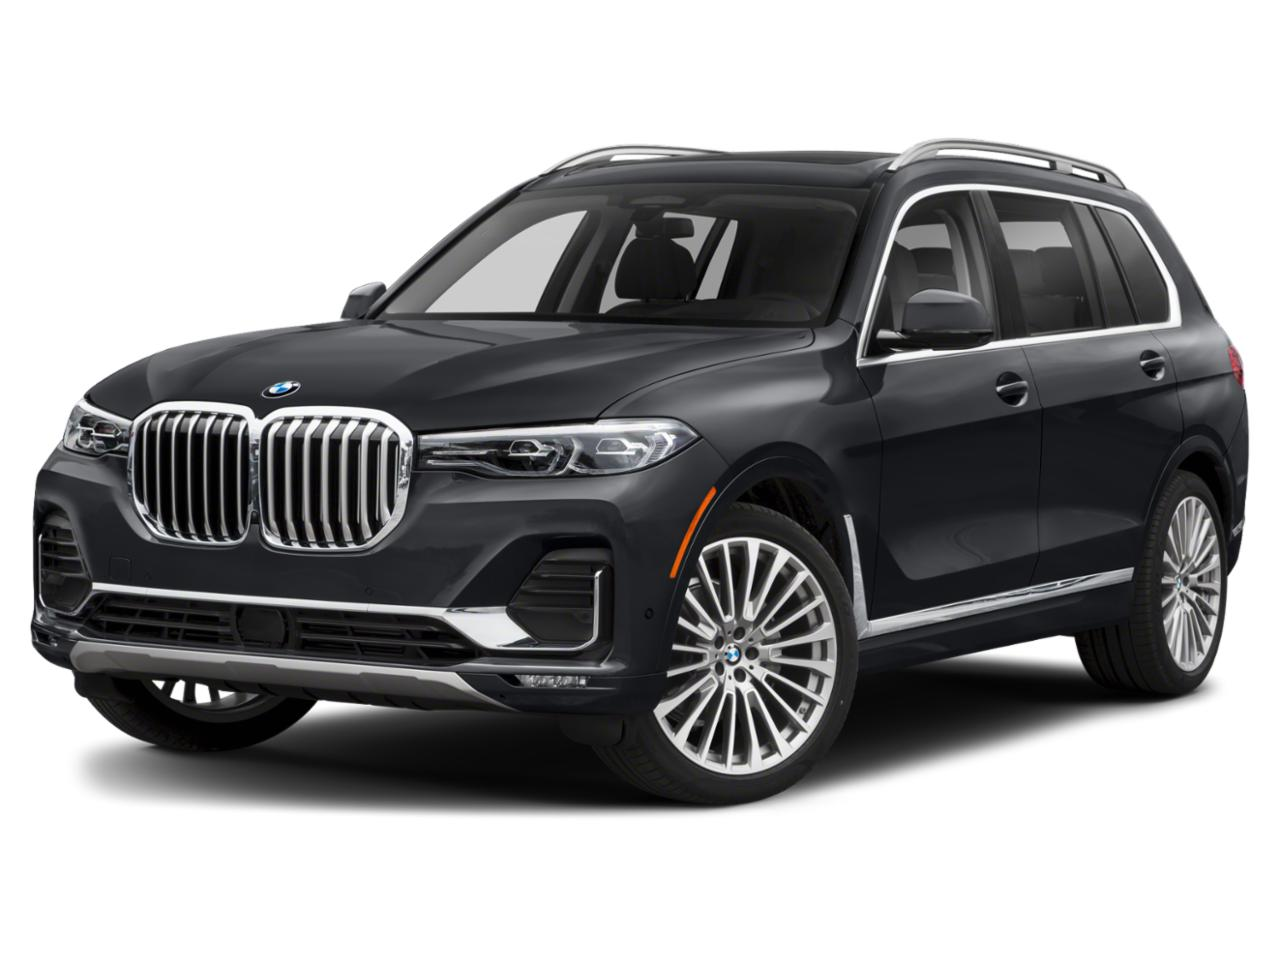 2020 BMW X7 M50i Vehicle Photo in Colorado Springs, CO 80920